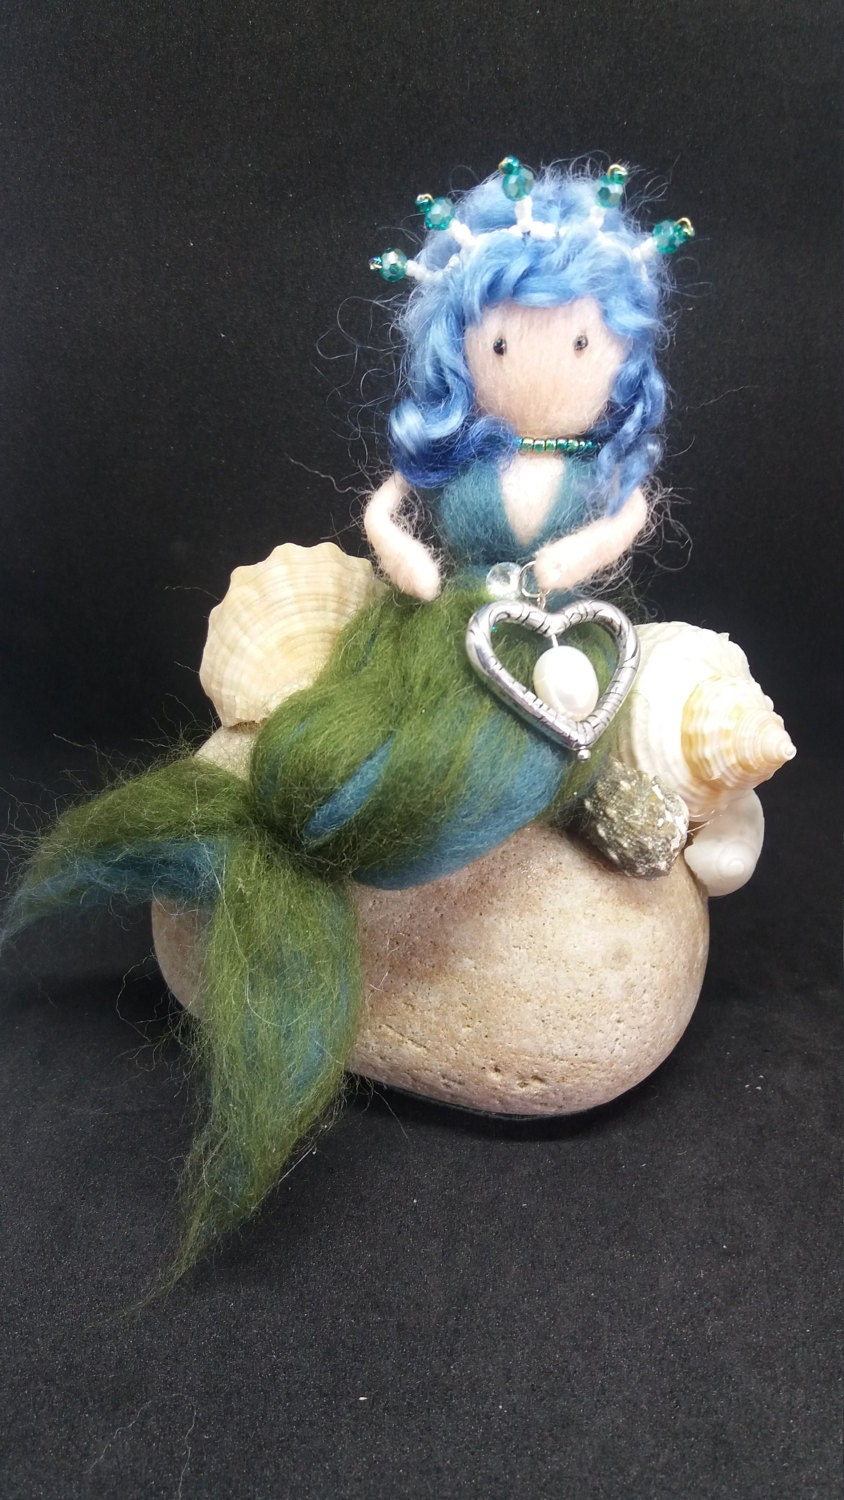 Little mermaid sitting on her pebble with heart and pearl. seaside home decoration mythical figure. woolfelt needle felt